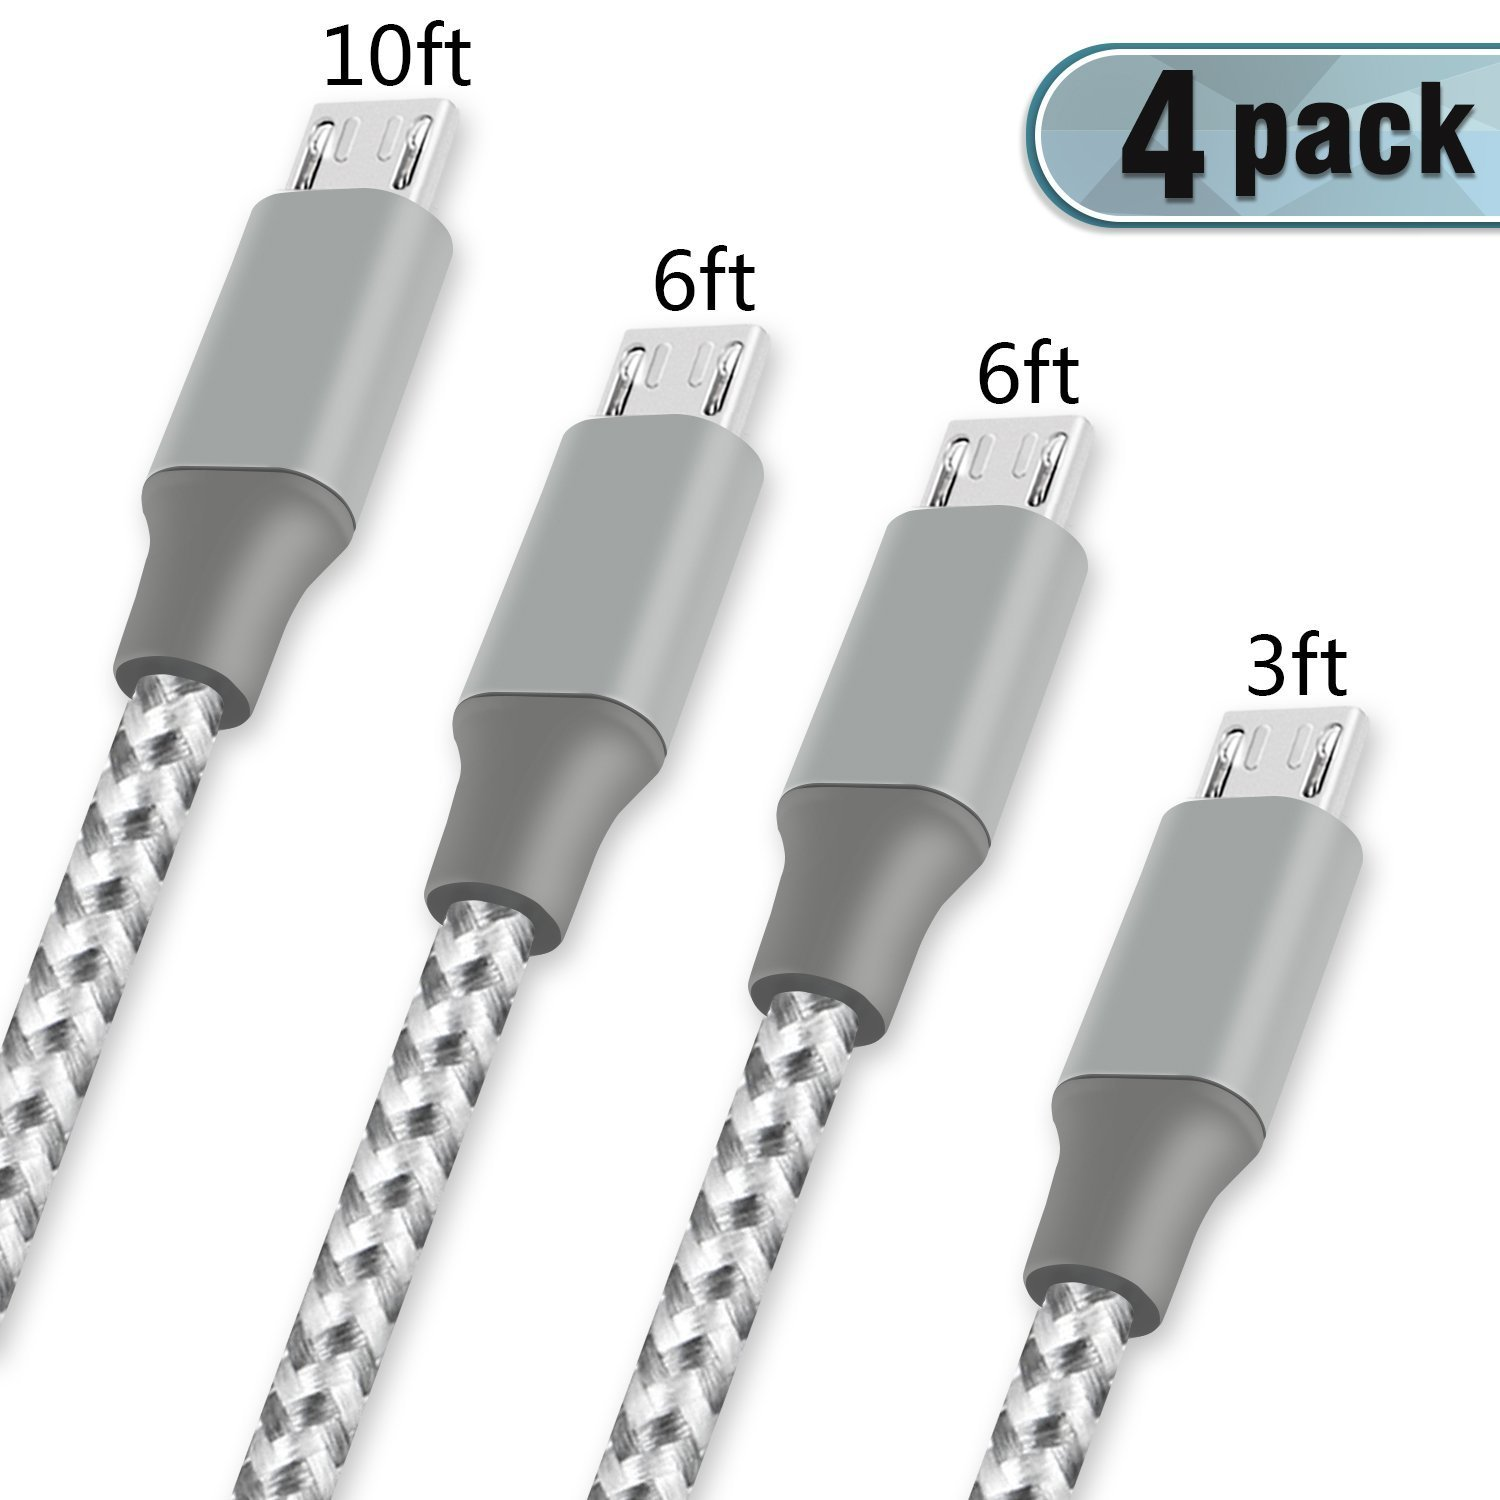 Youer Micro USB Cable,4Pack 3FT 6FT 6FT 10FT Nylon Braided Android Charger USB to Micro USB Charging Charger Cord for Samsung Galaxy S7 Edge/S7/S6/S4/S3,Note 5/4/3(Gray White)